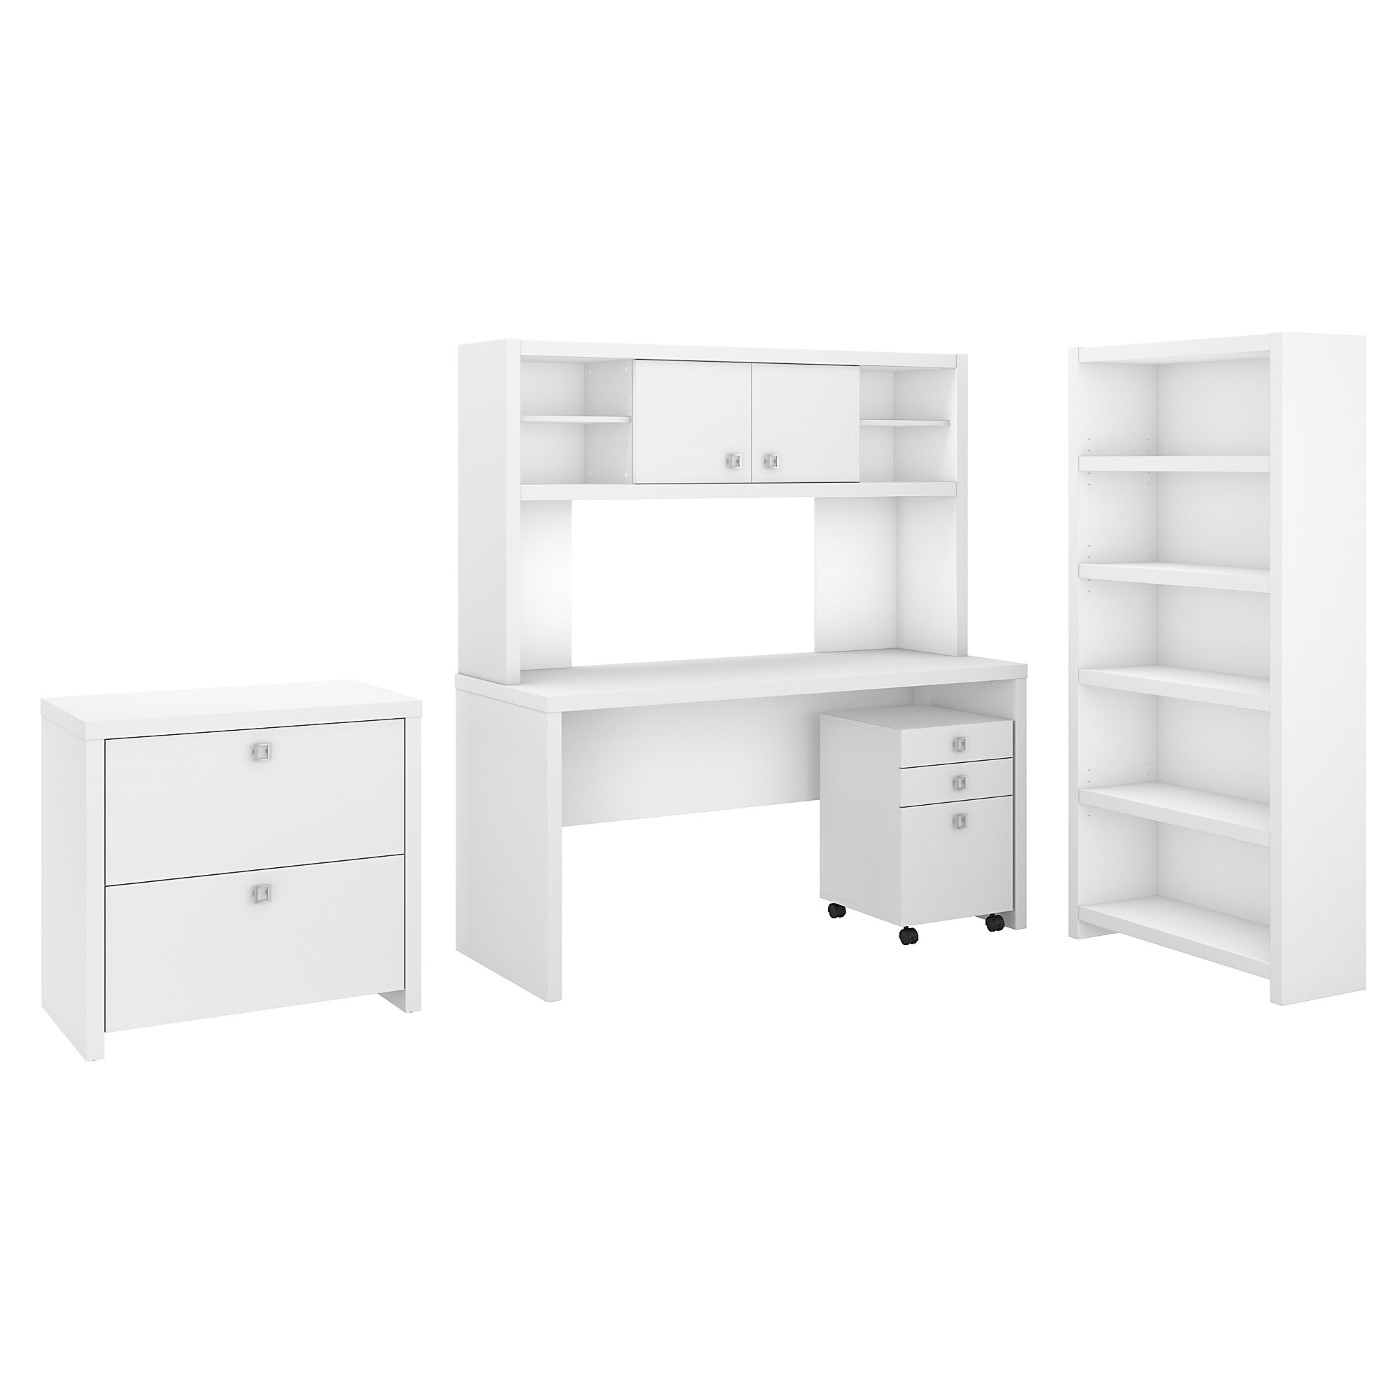 OFFICE BY KATHY IRELAND� ECHO DESK WITH HUTCH, BOOKCASE AND FILE CABINETS. FREE SHIPPING